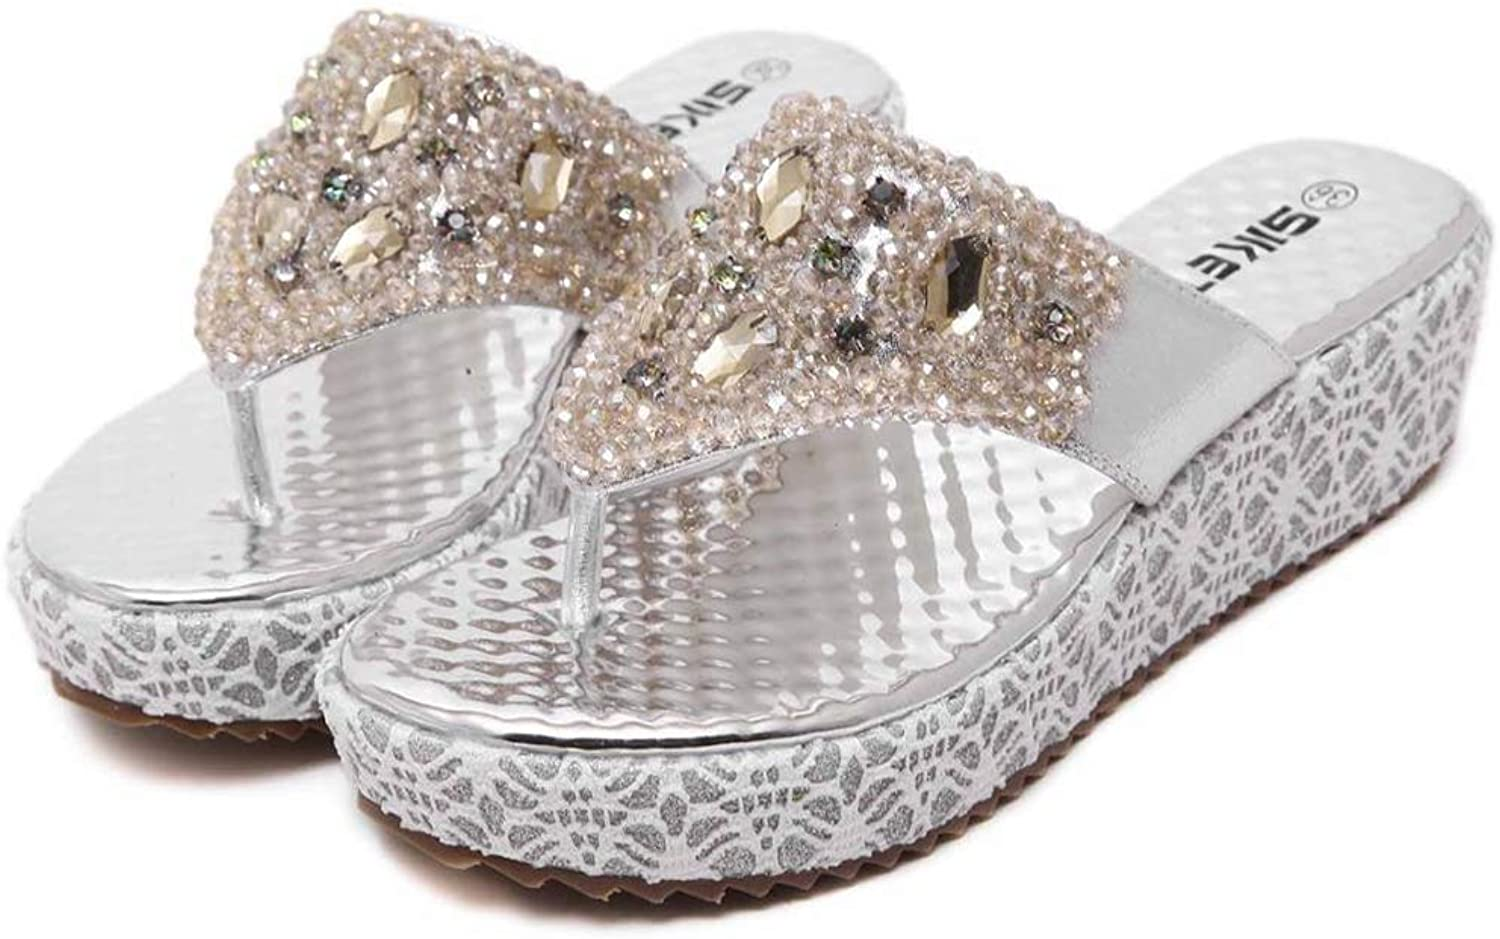 T-JULY Slides Sandals for Women Summer Wedges Slippers Crystal Comfortable Ladies shoes